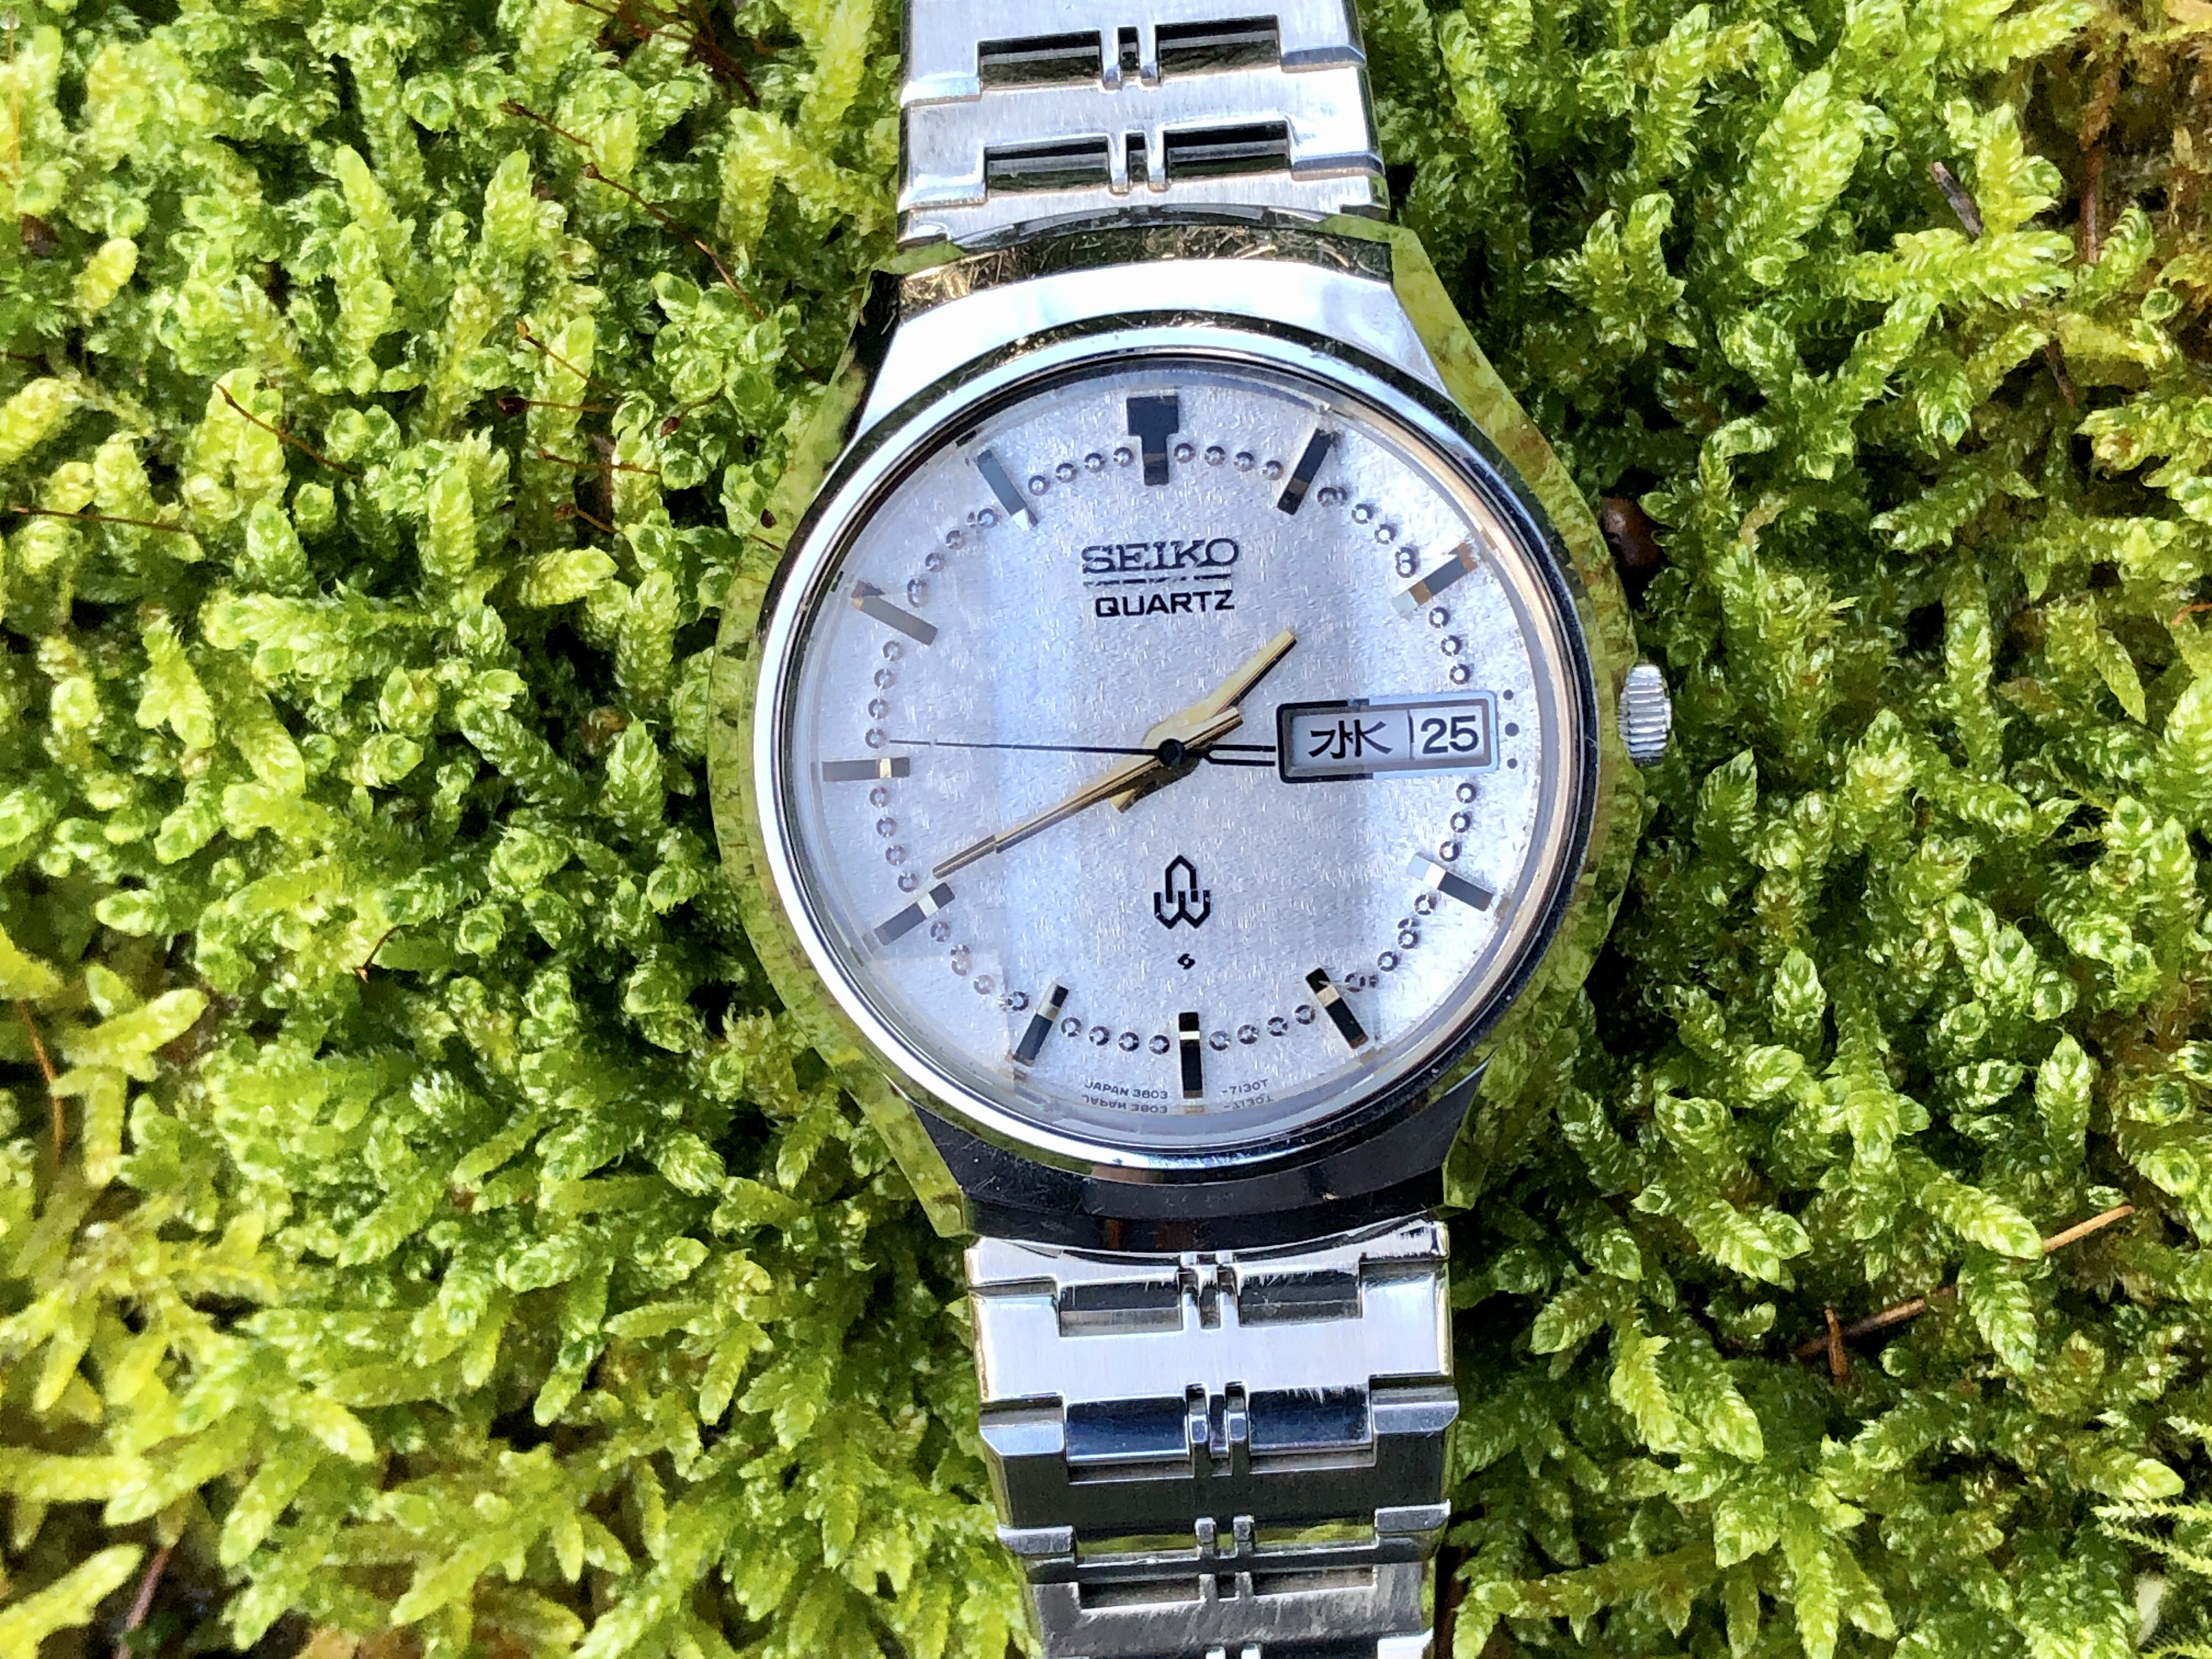 Seiko Quartz 3803-7060 (Sold)